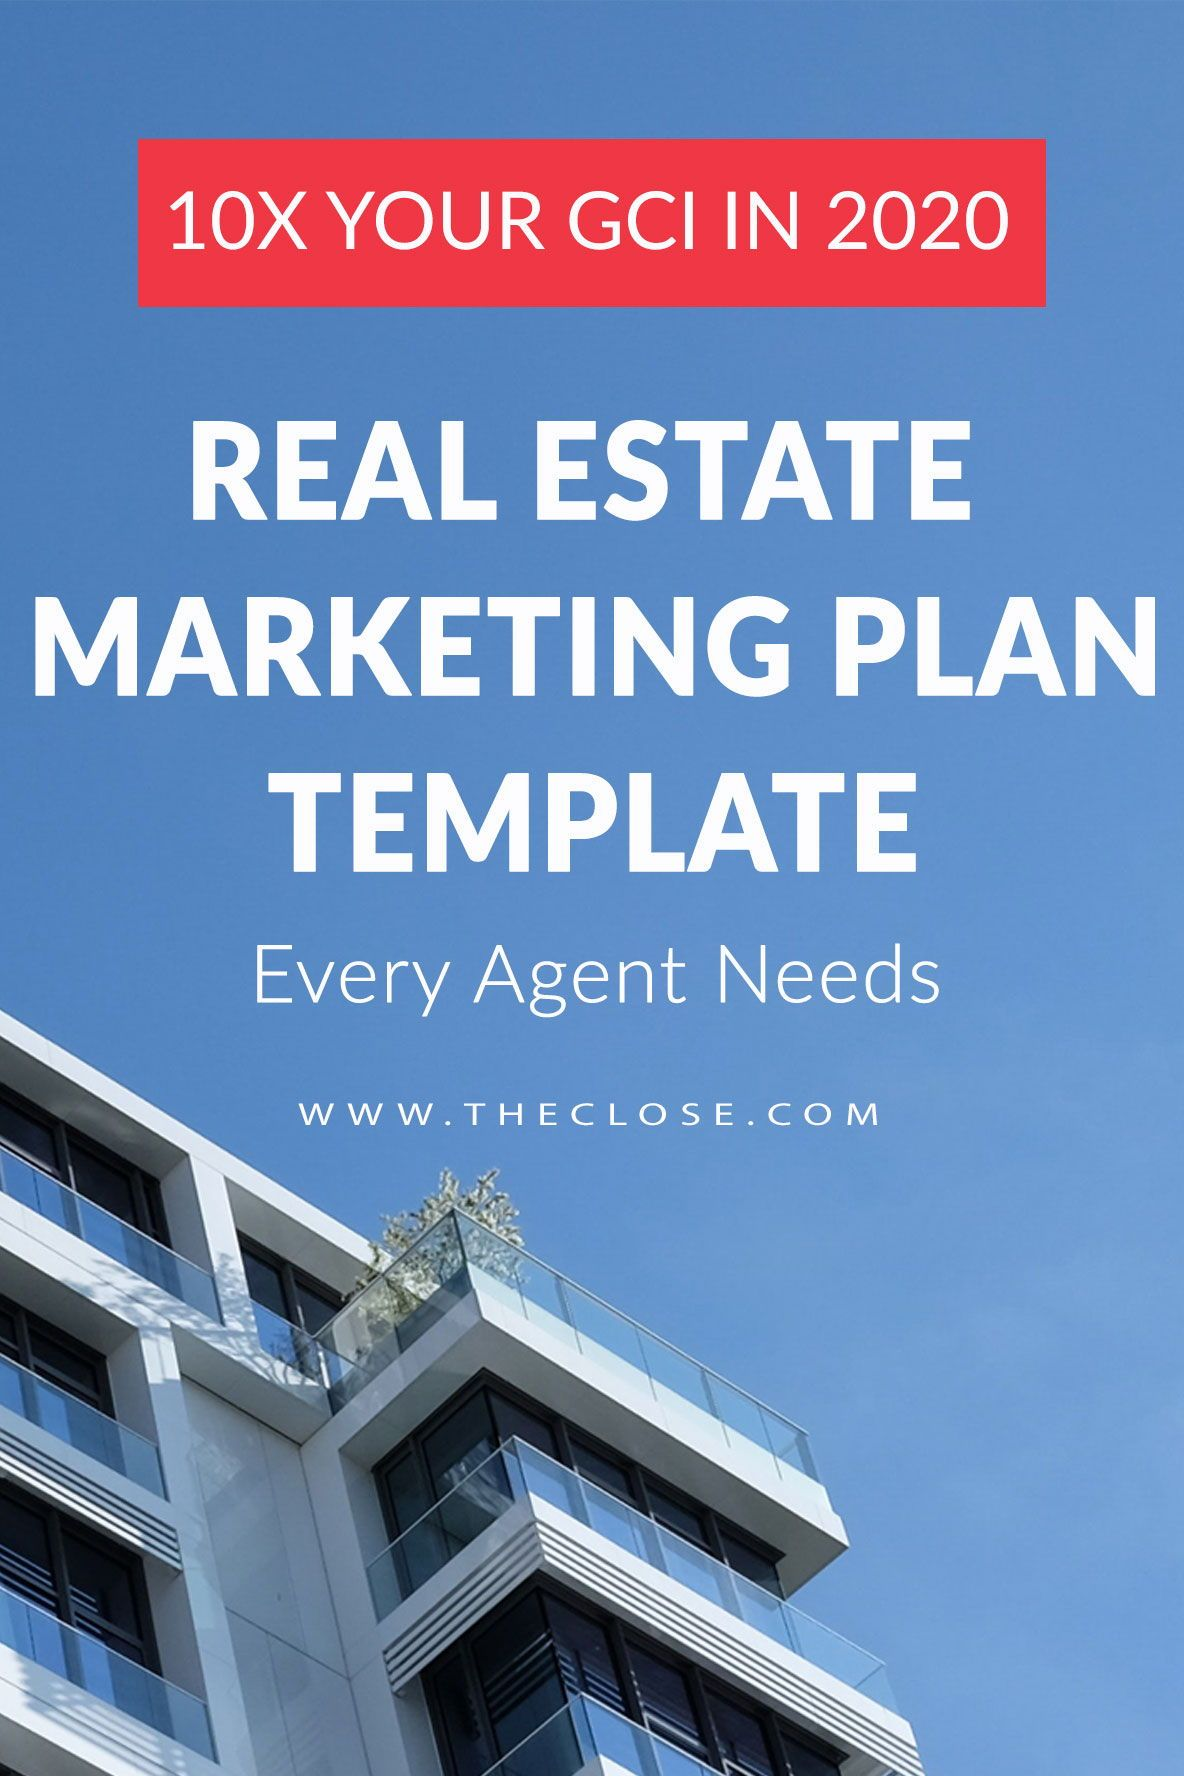 The Real Estate Marketing Plan Template Every Agent Needs For 2021 The Close Real Estate Marketing Plan Real Estate Marketing Marketing Plan Template Real estate listing marketing plan